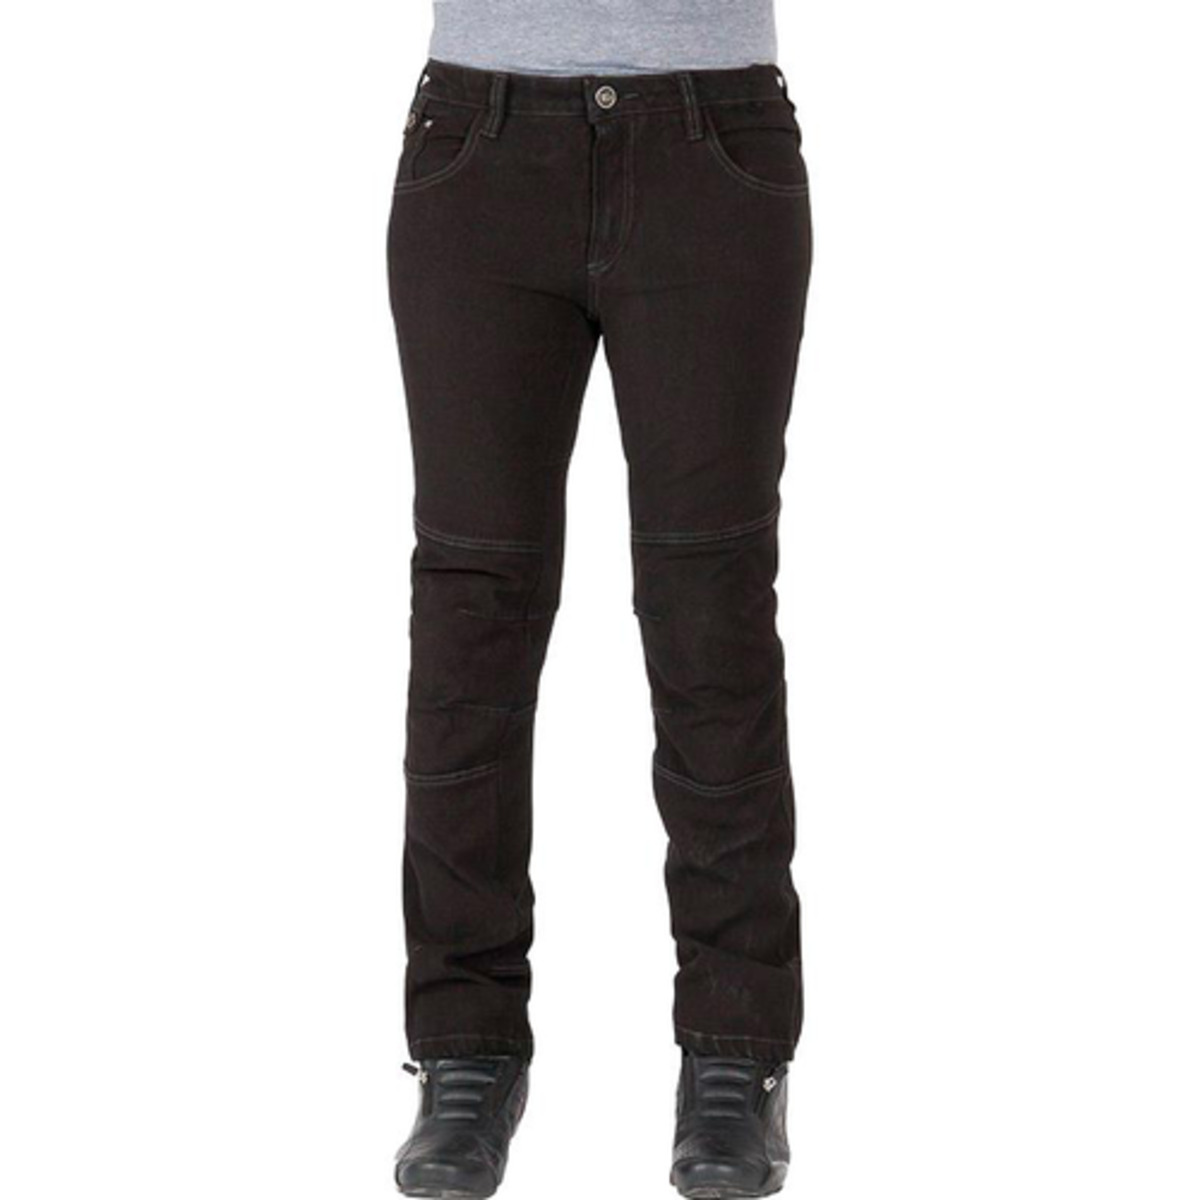 Bild 1 von Strong Exclusivite Damen Jeans